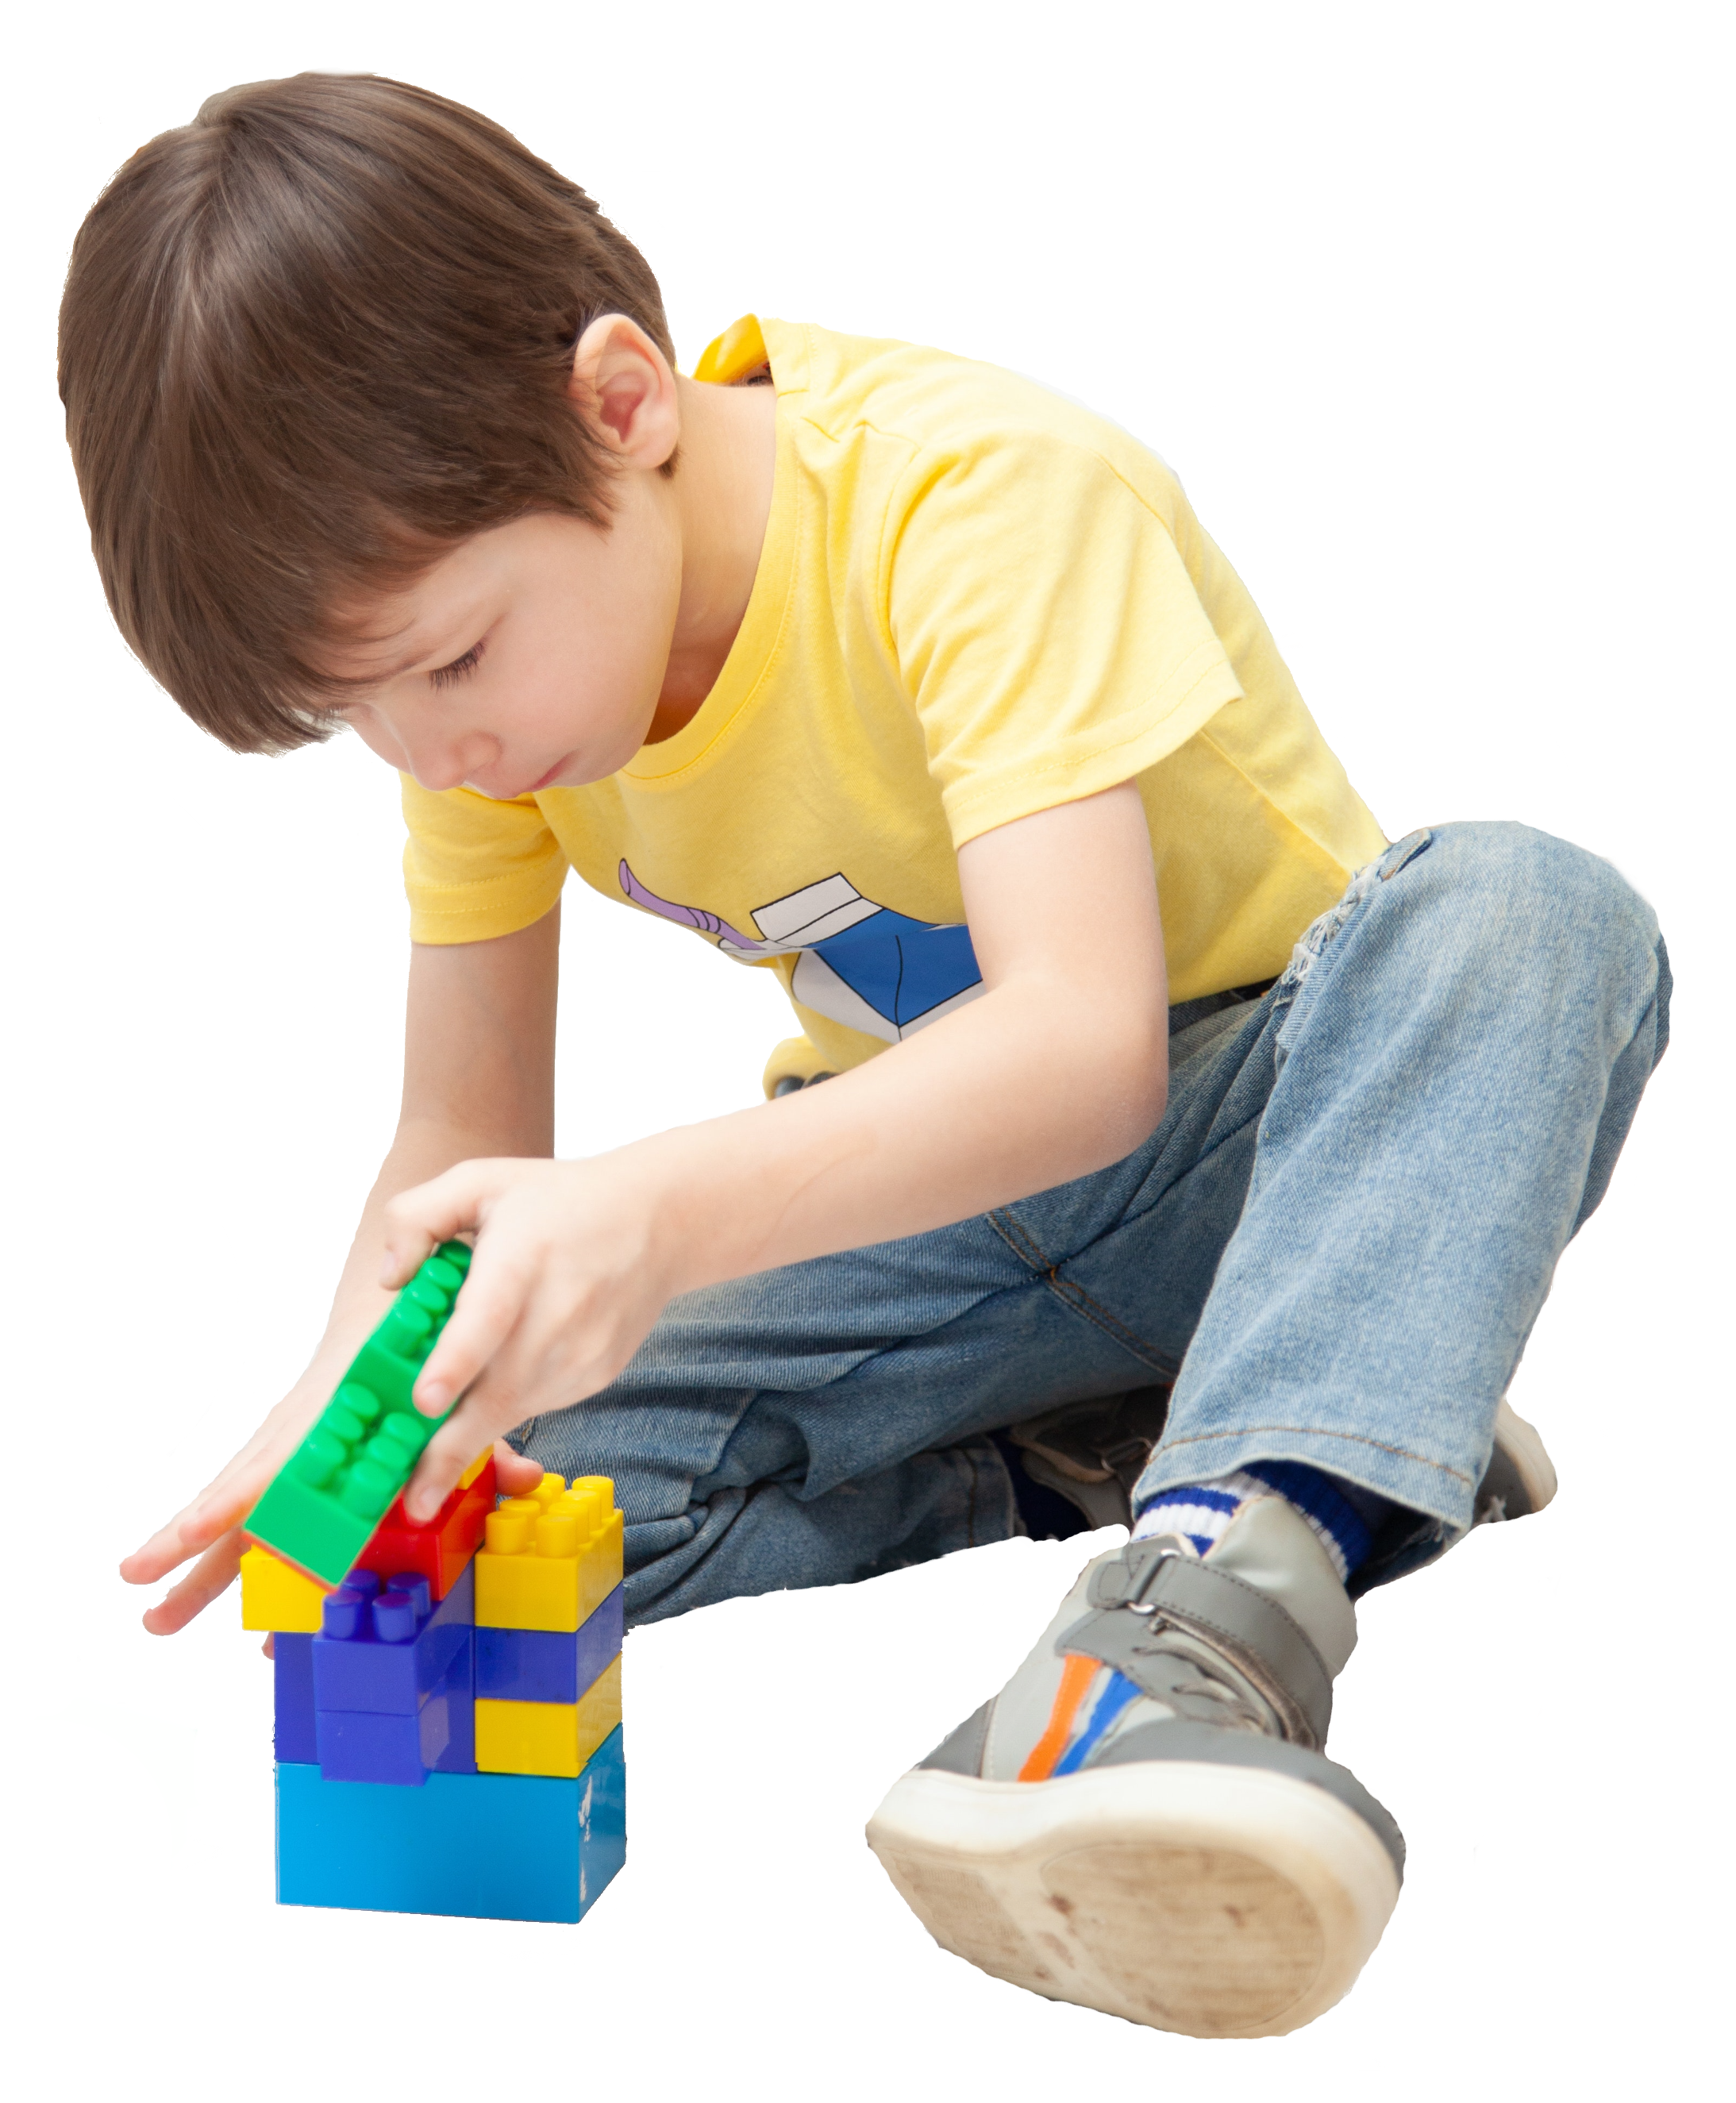 Child in yellow tshirt playing with blocks